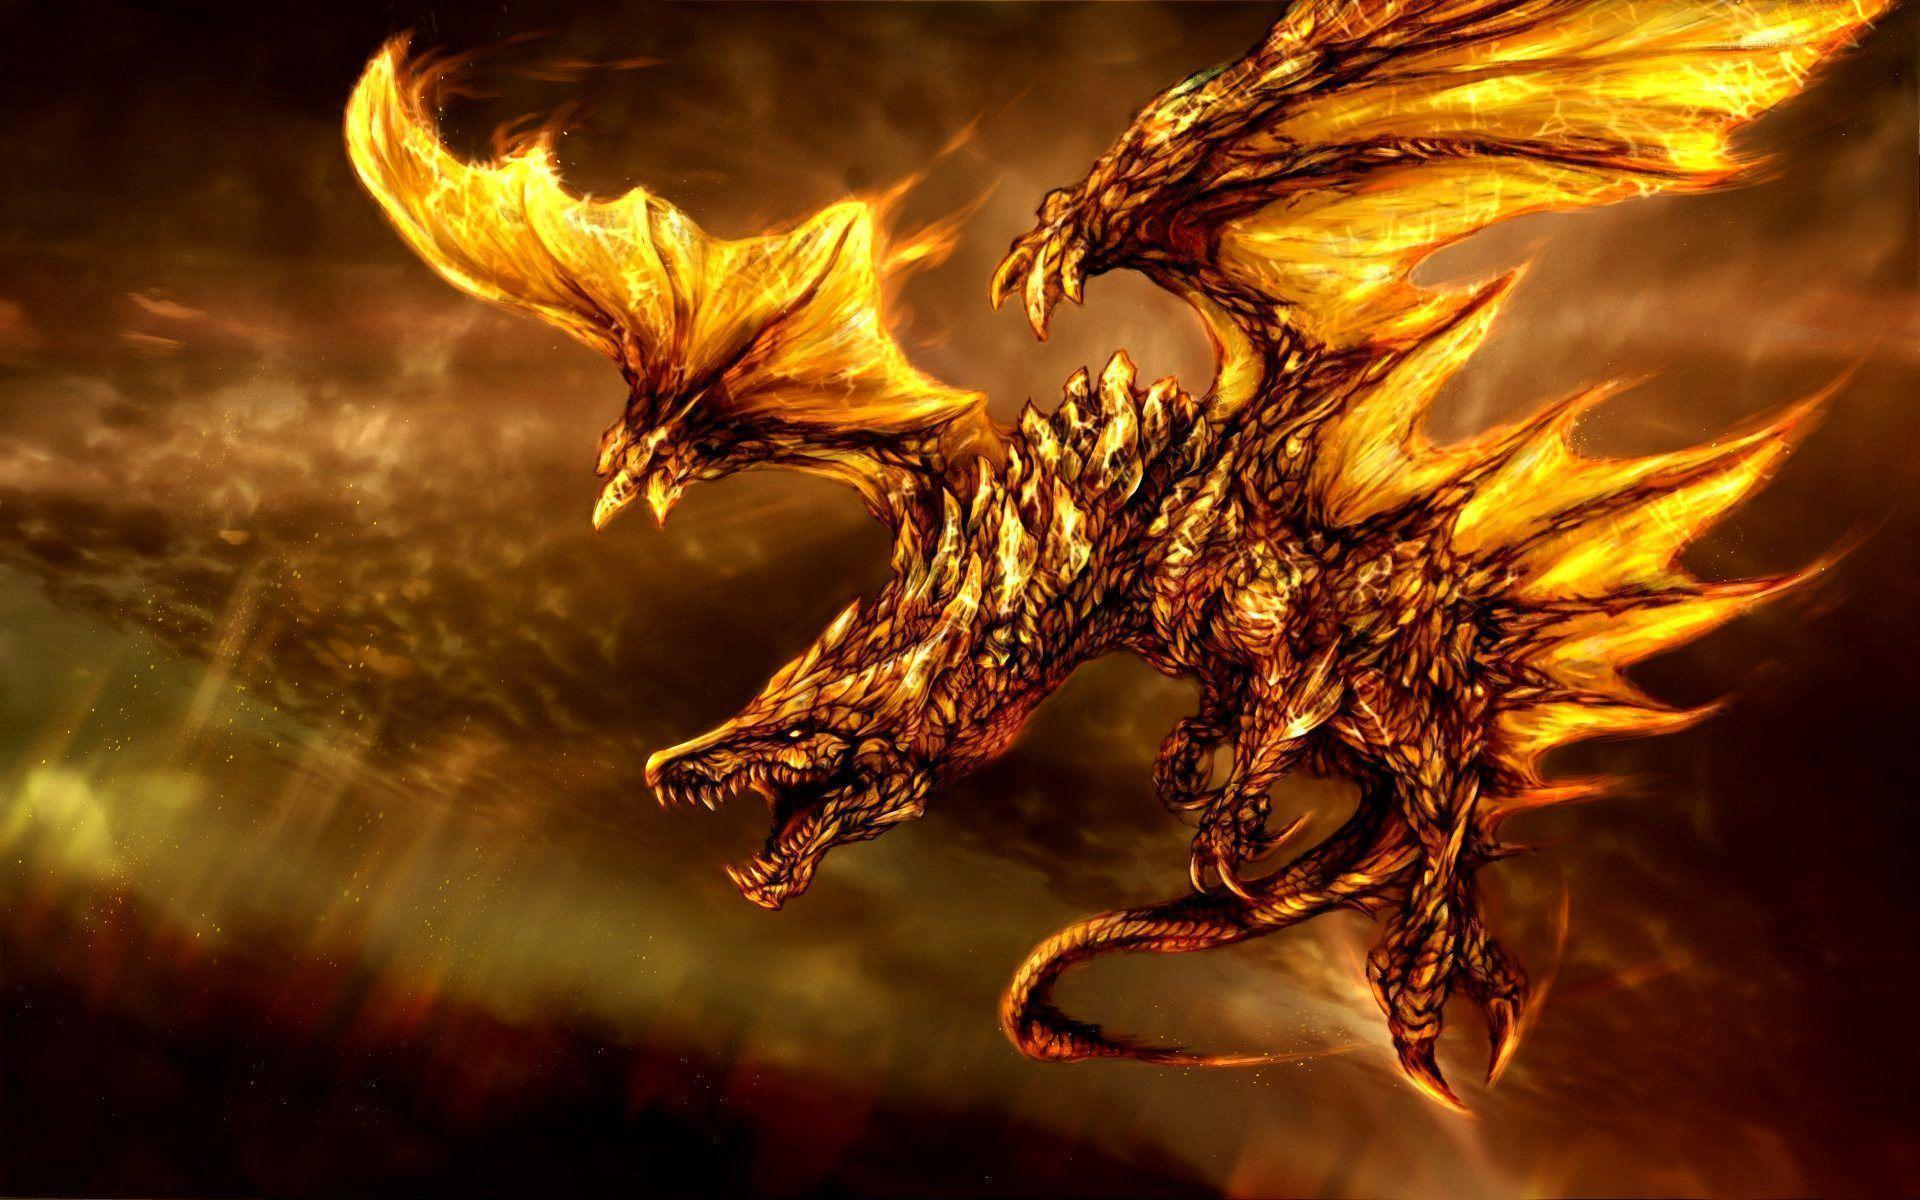 3D Fire Dragon Desktop Wallpaper #2974 #13858 Wallpaper | SpotIMG